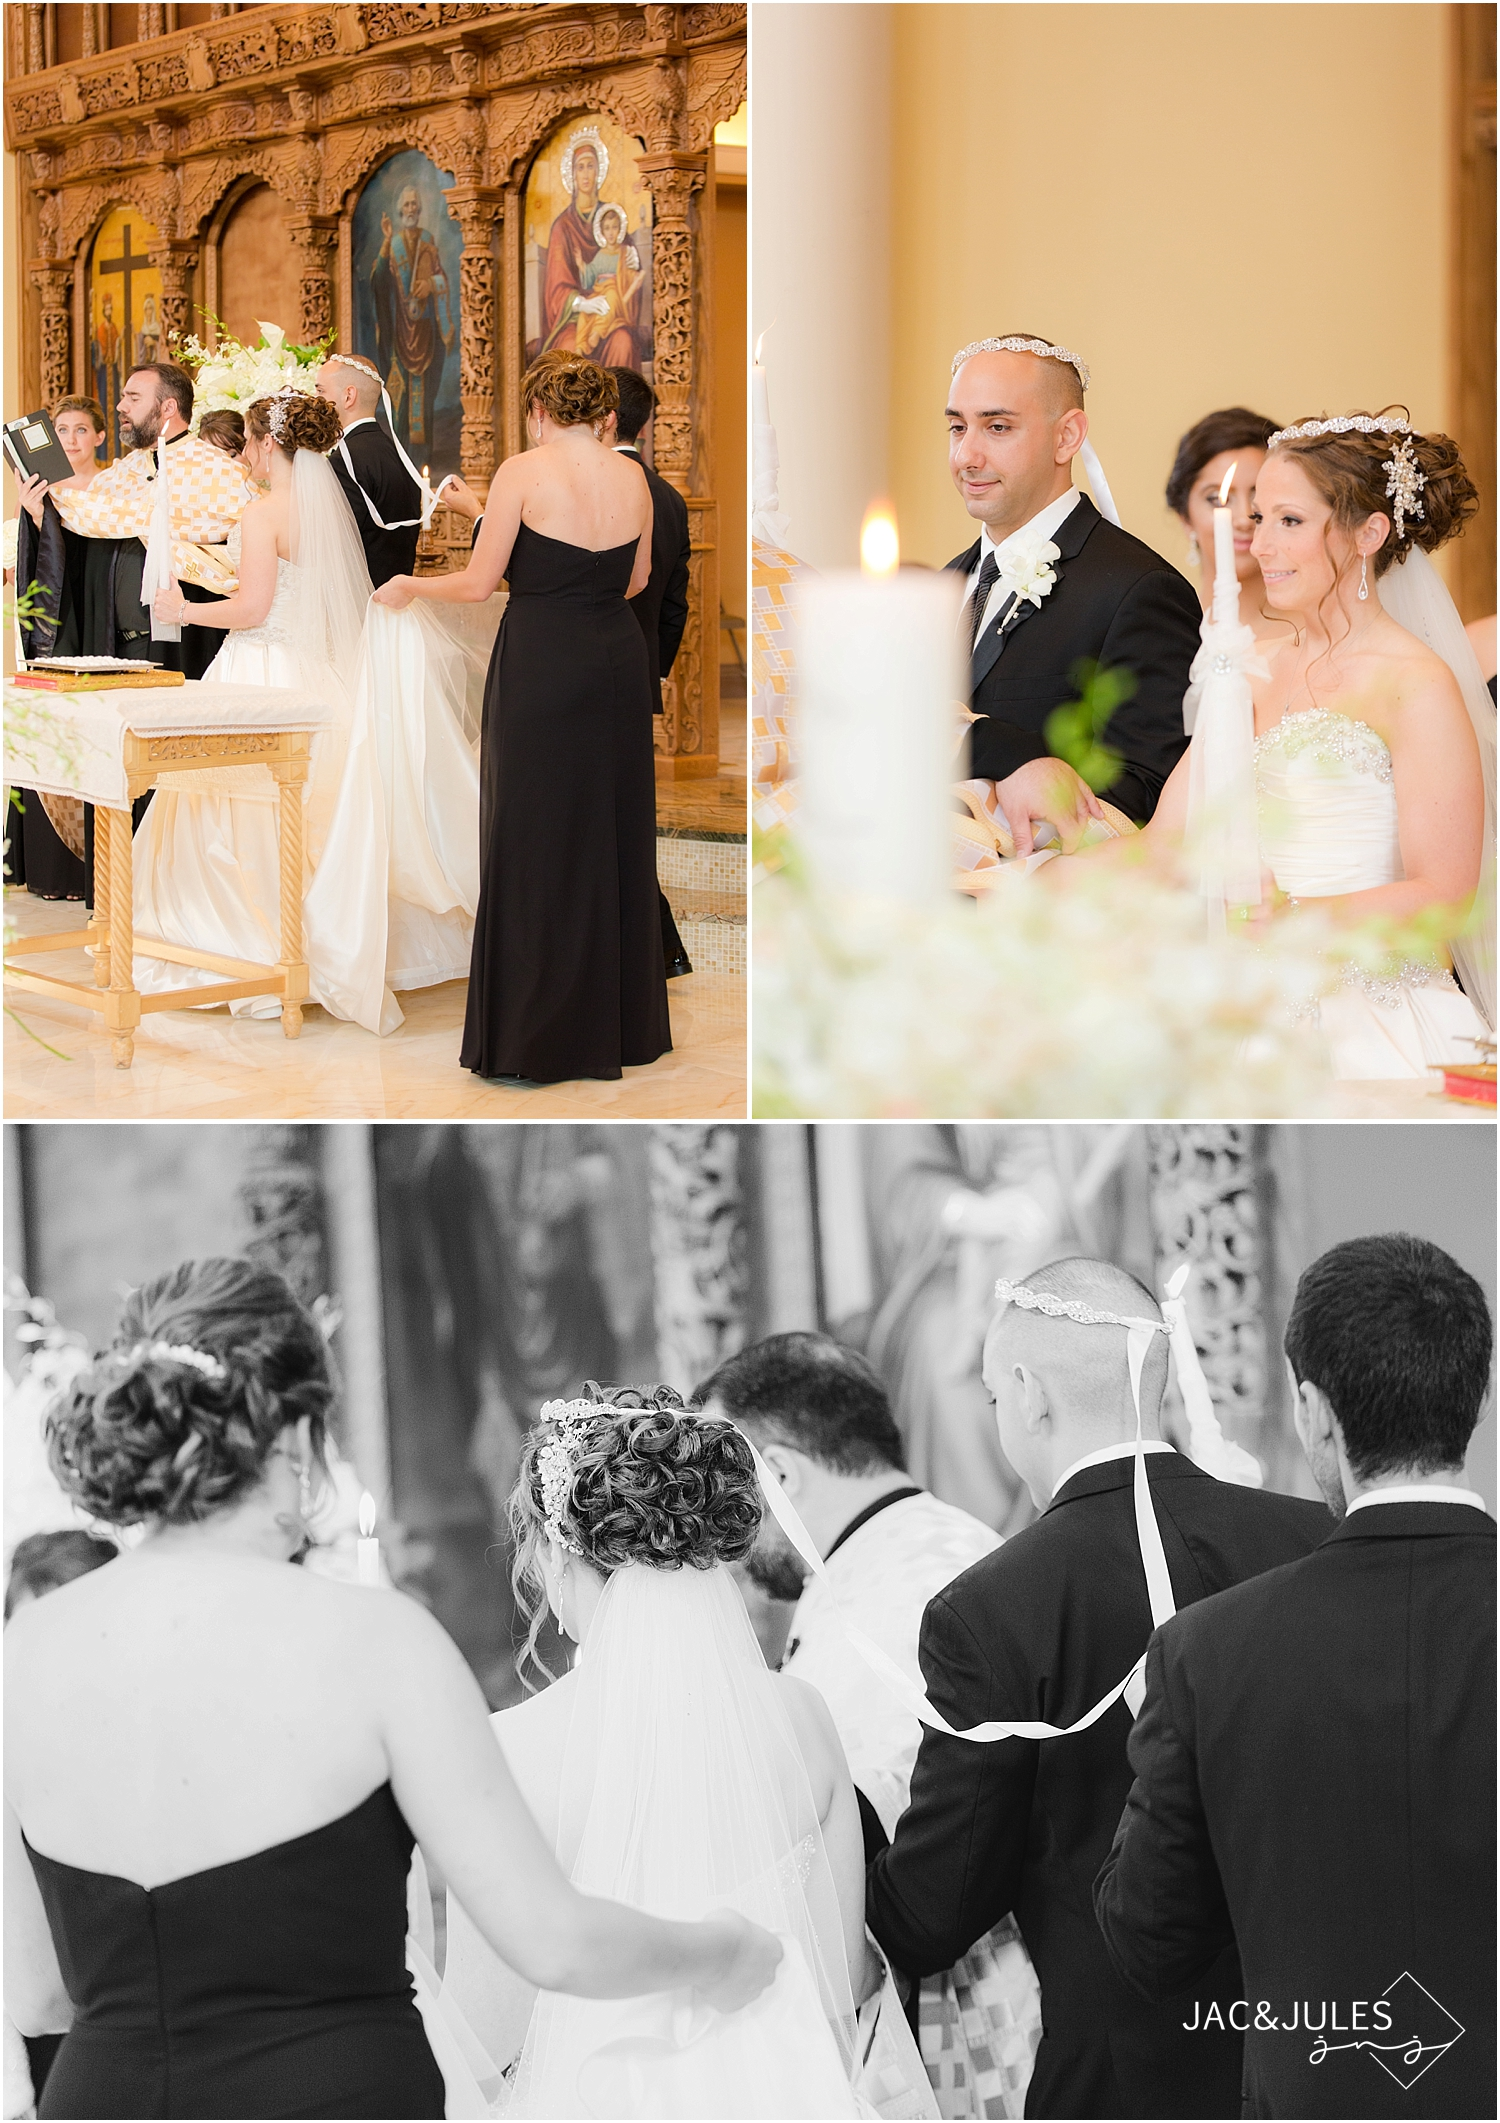 jacnjules photograph a greek orthodox wedding at St. Nicholas, Constantine and Helen in West Orange, NJ